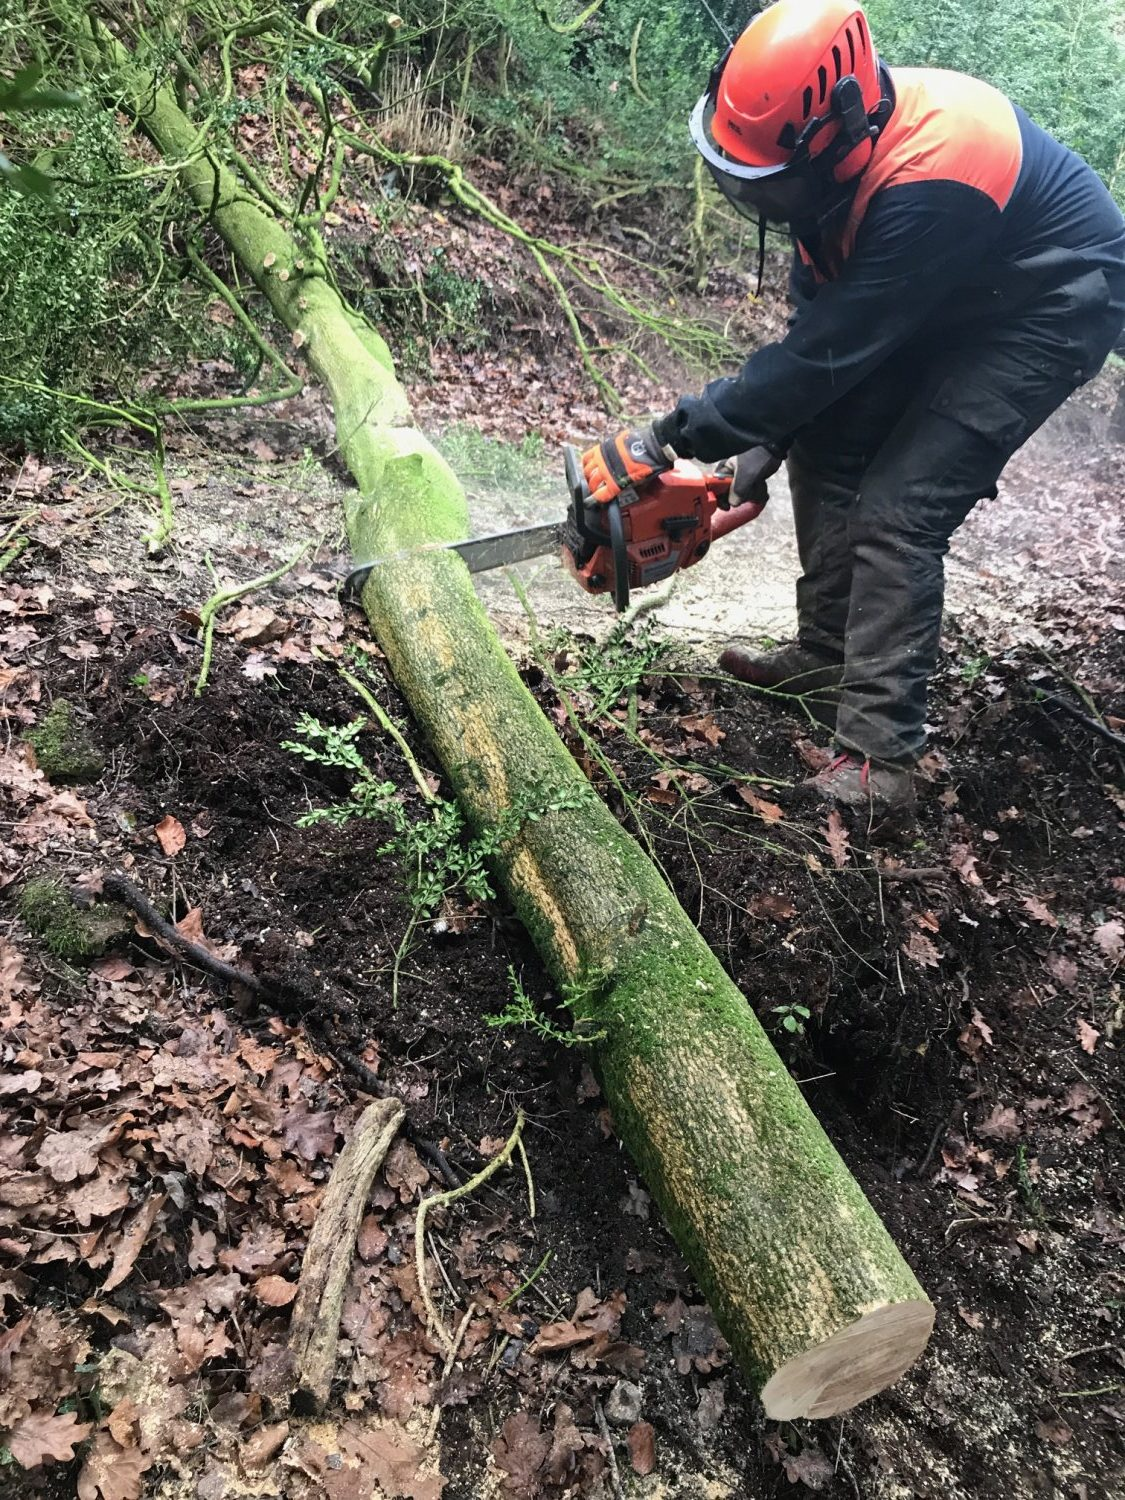 Simon Penna cutting sections from a felled boxwood tree